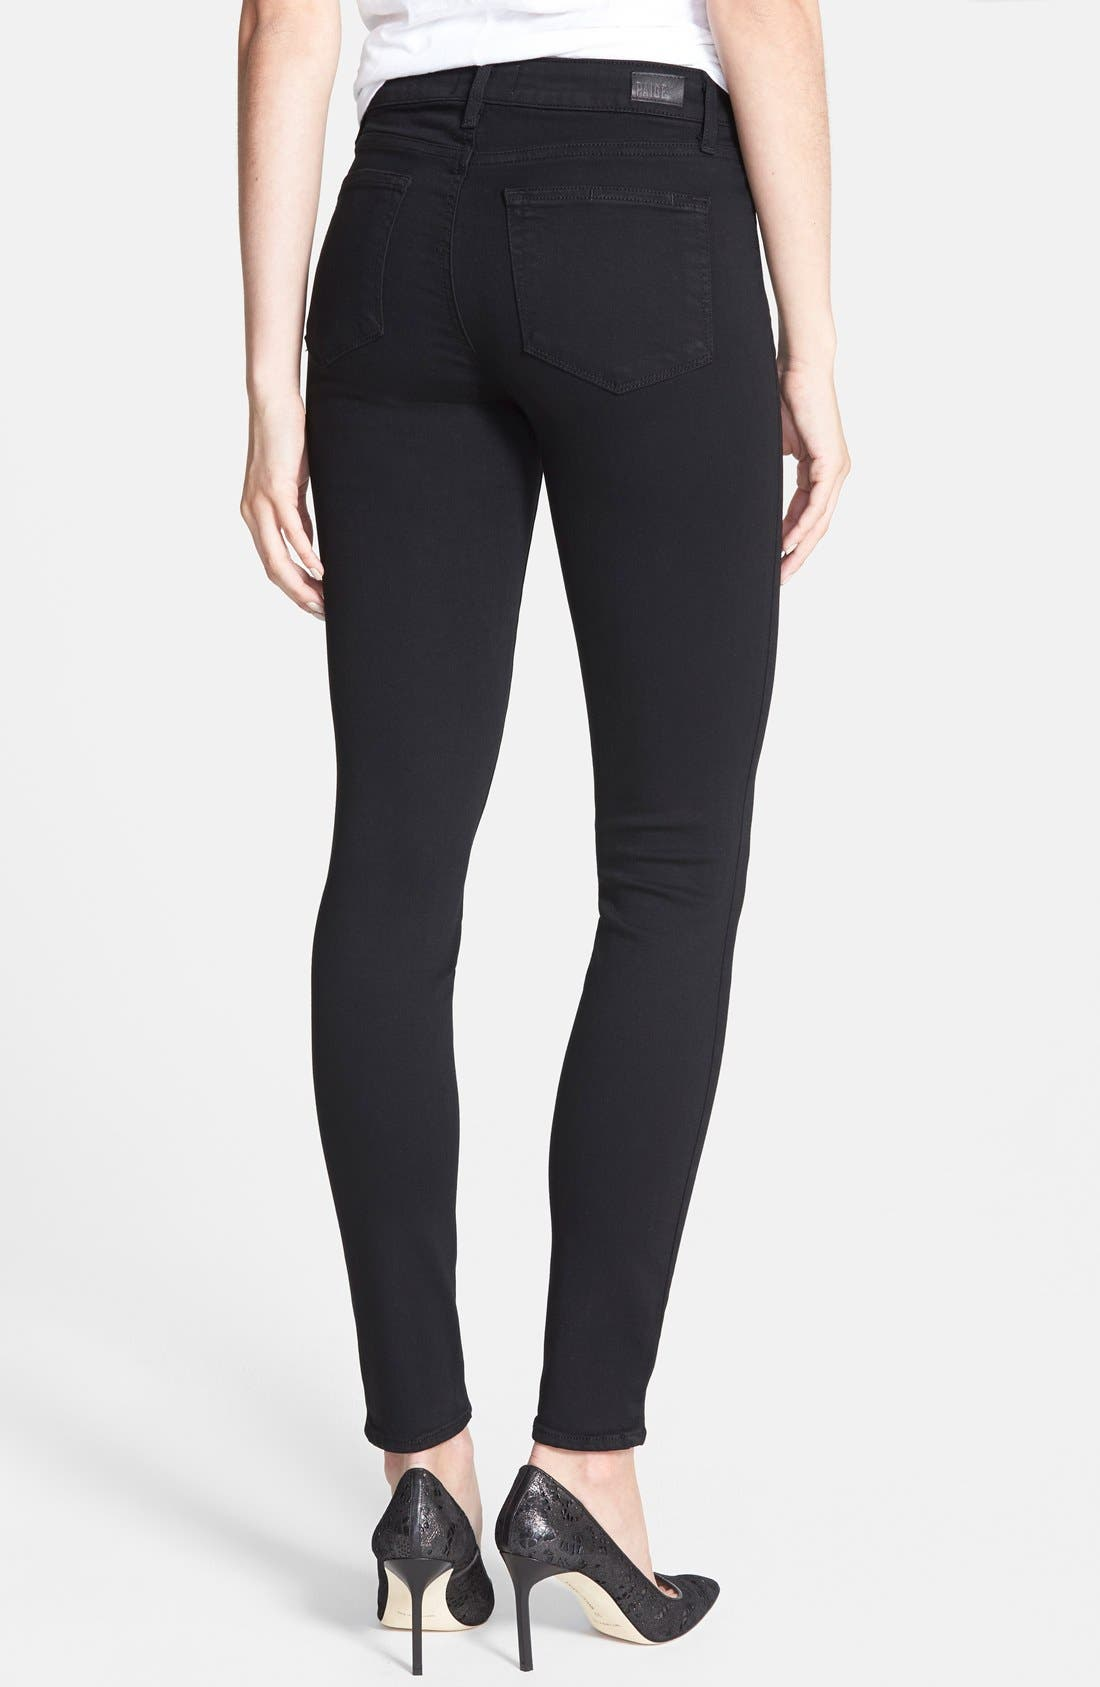 Transcend - Hoxton High Waist Ultra Skinny Stretch Jeans,                             Alternate thumbnail 4, color,                             BLACK SHADOW